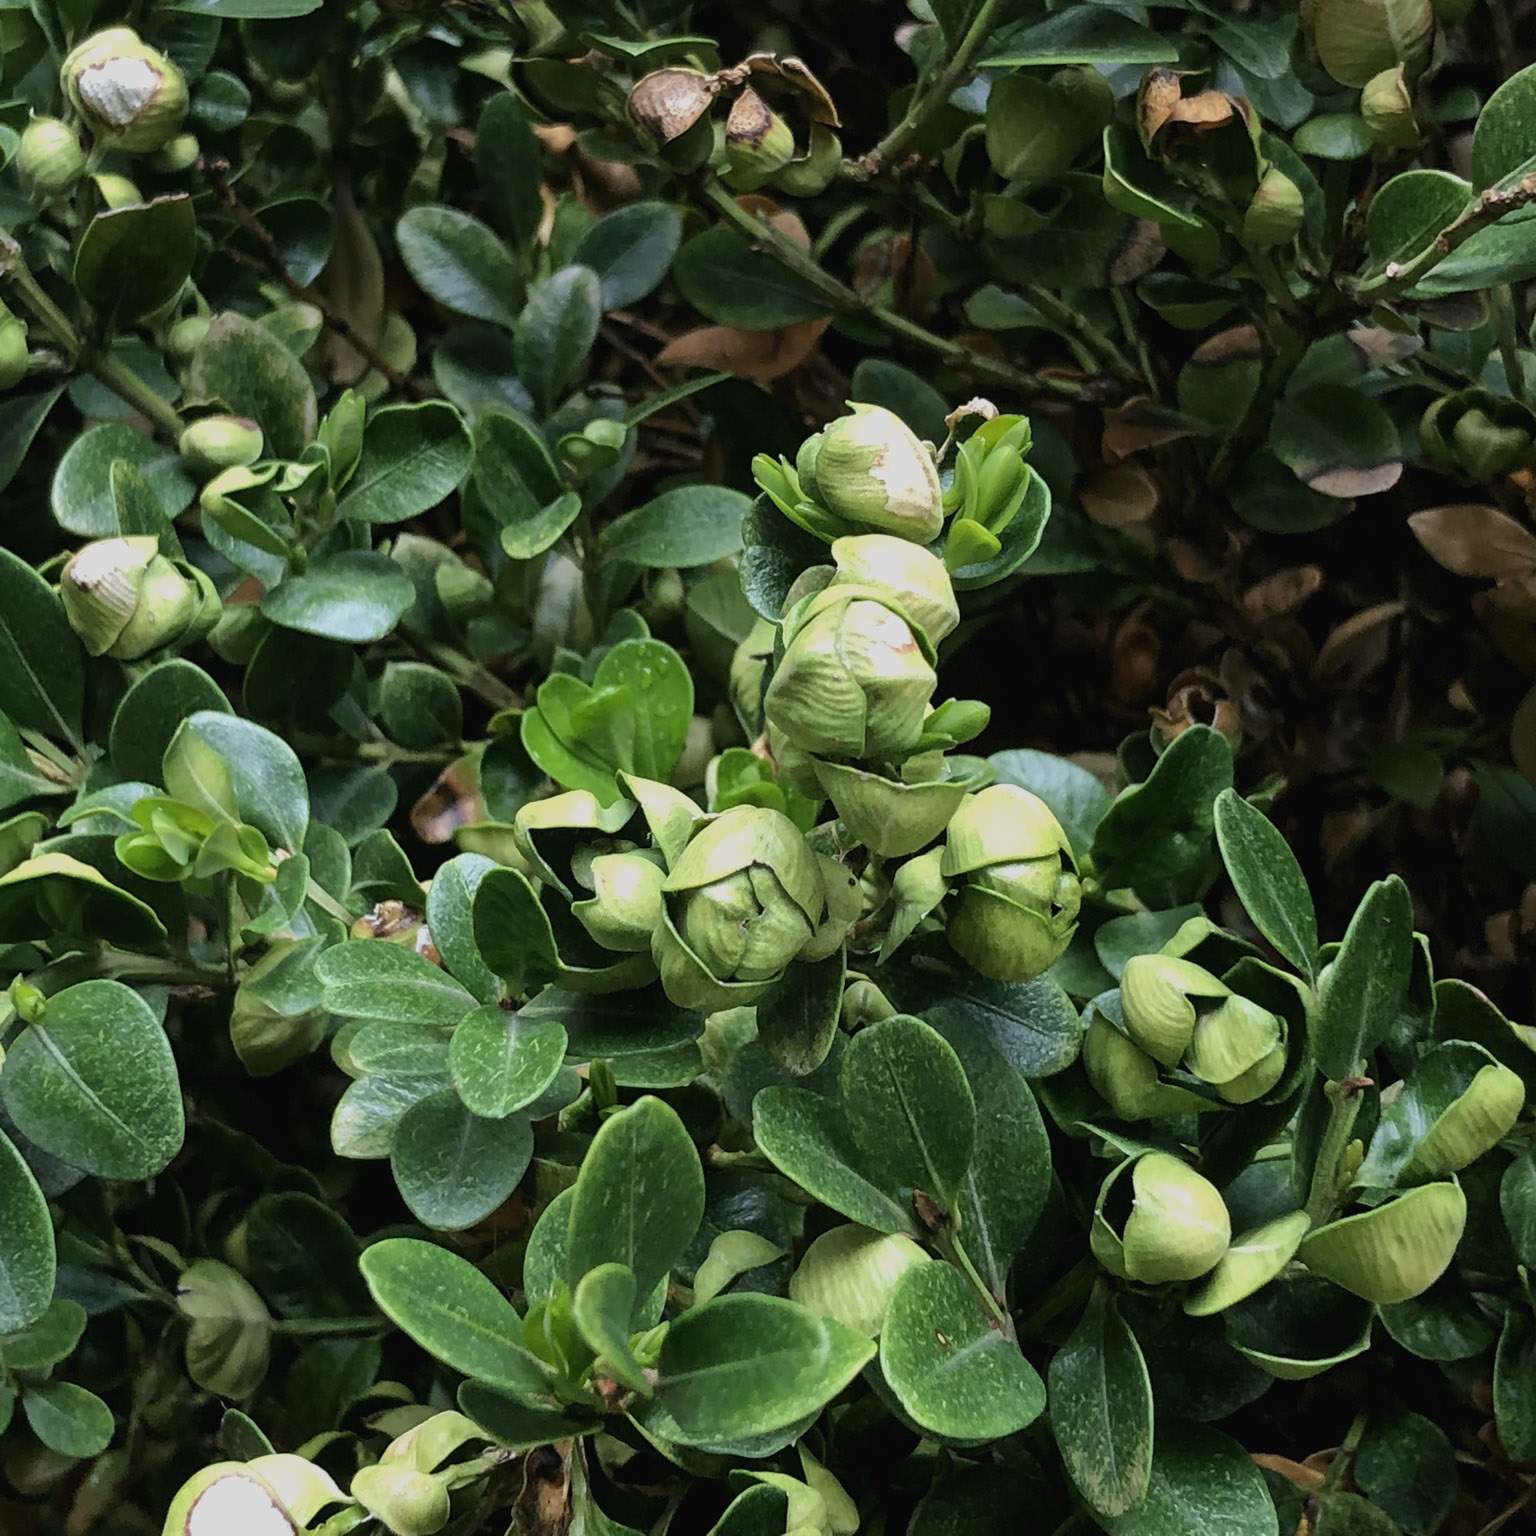 Boxwood psyllid damage causes cupping of terminal leaves of stems.